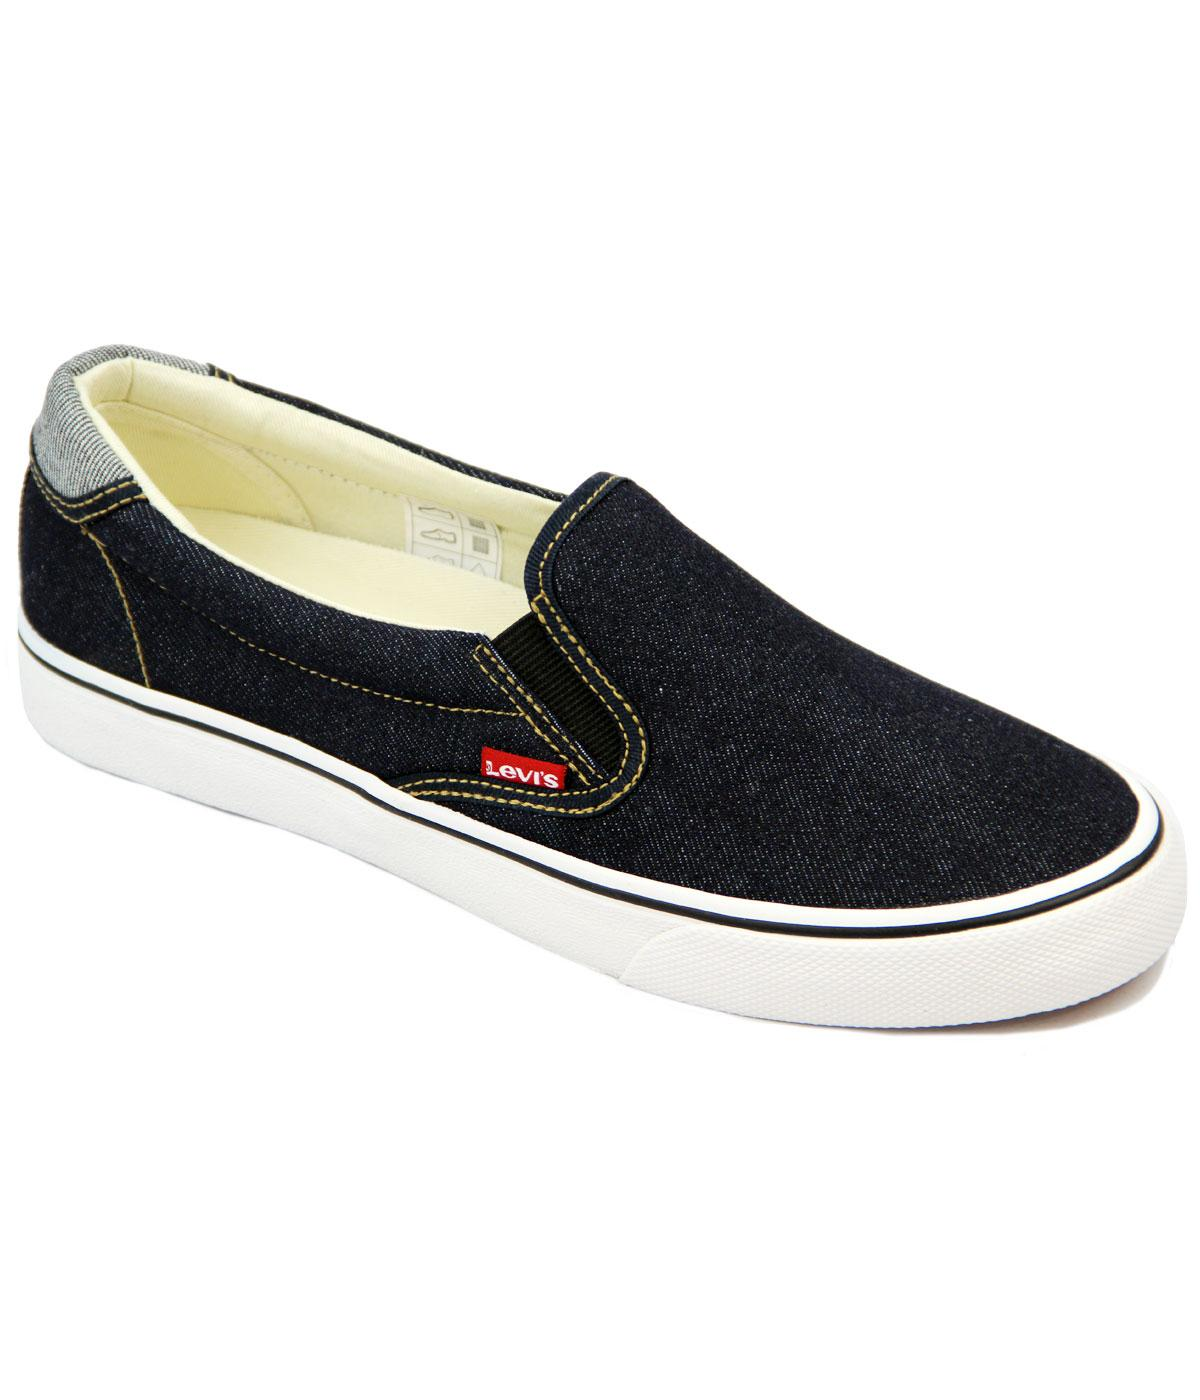 Levi's® Original Red Tab Slip On Denim Sneakers